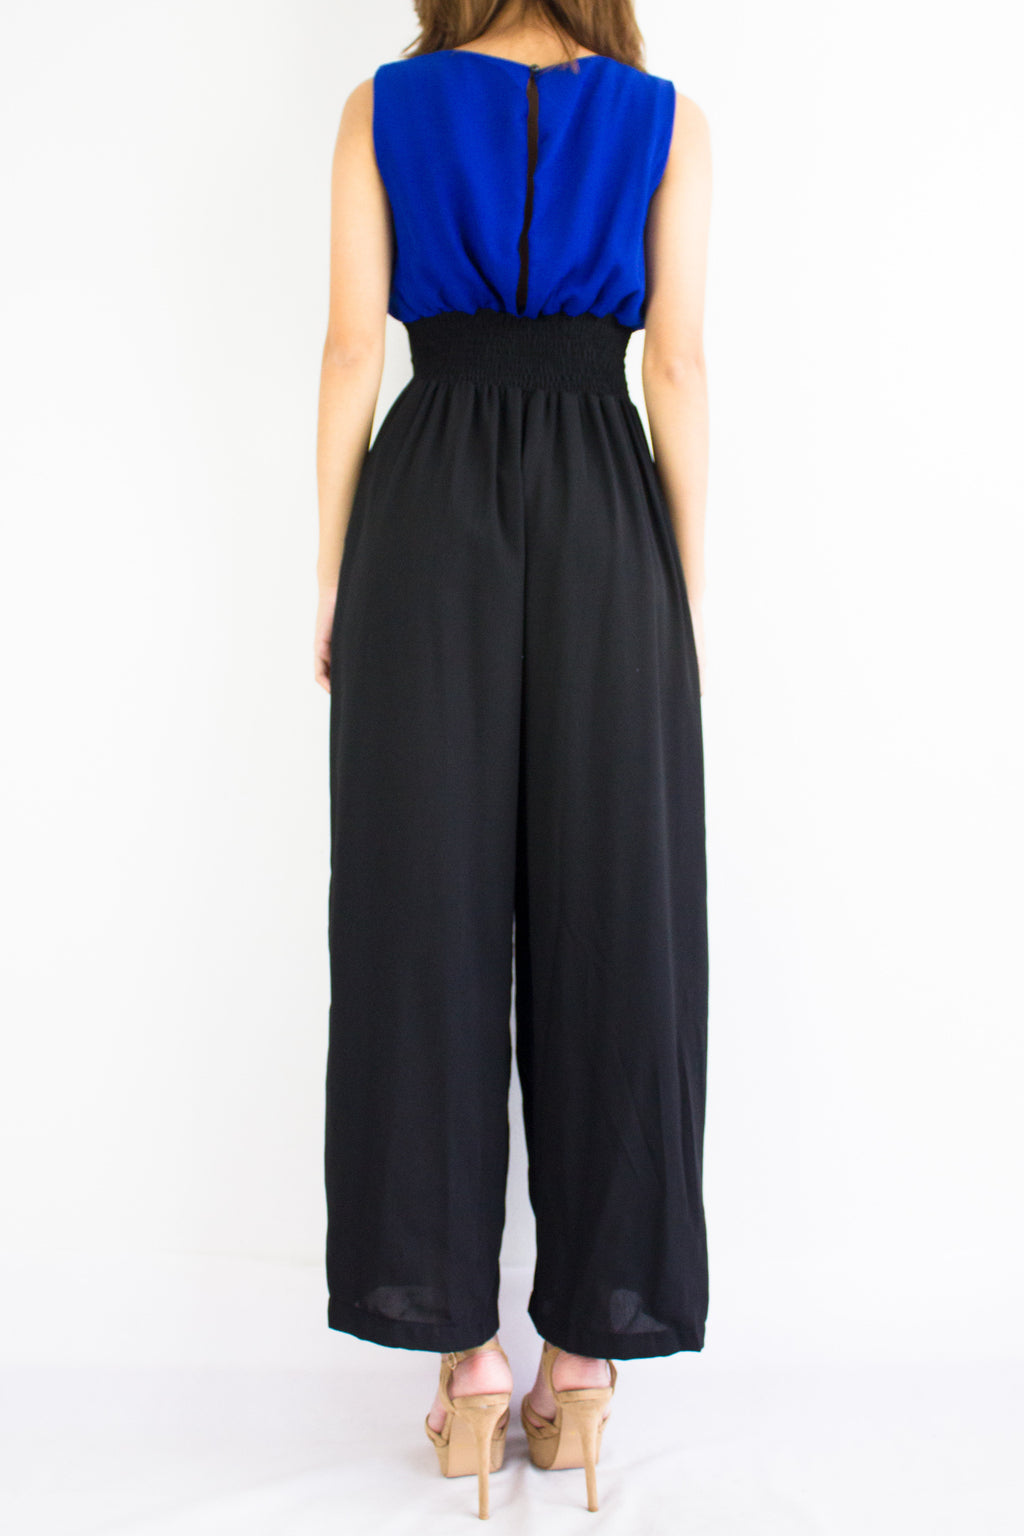 Dana Duotone Jumpsuit in Royal Blue - BOTTOMS - Peep Boutique